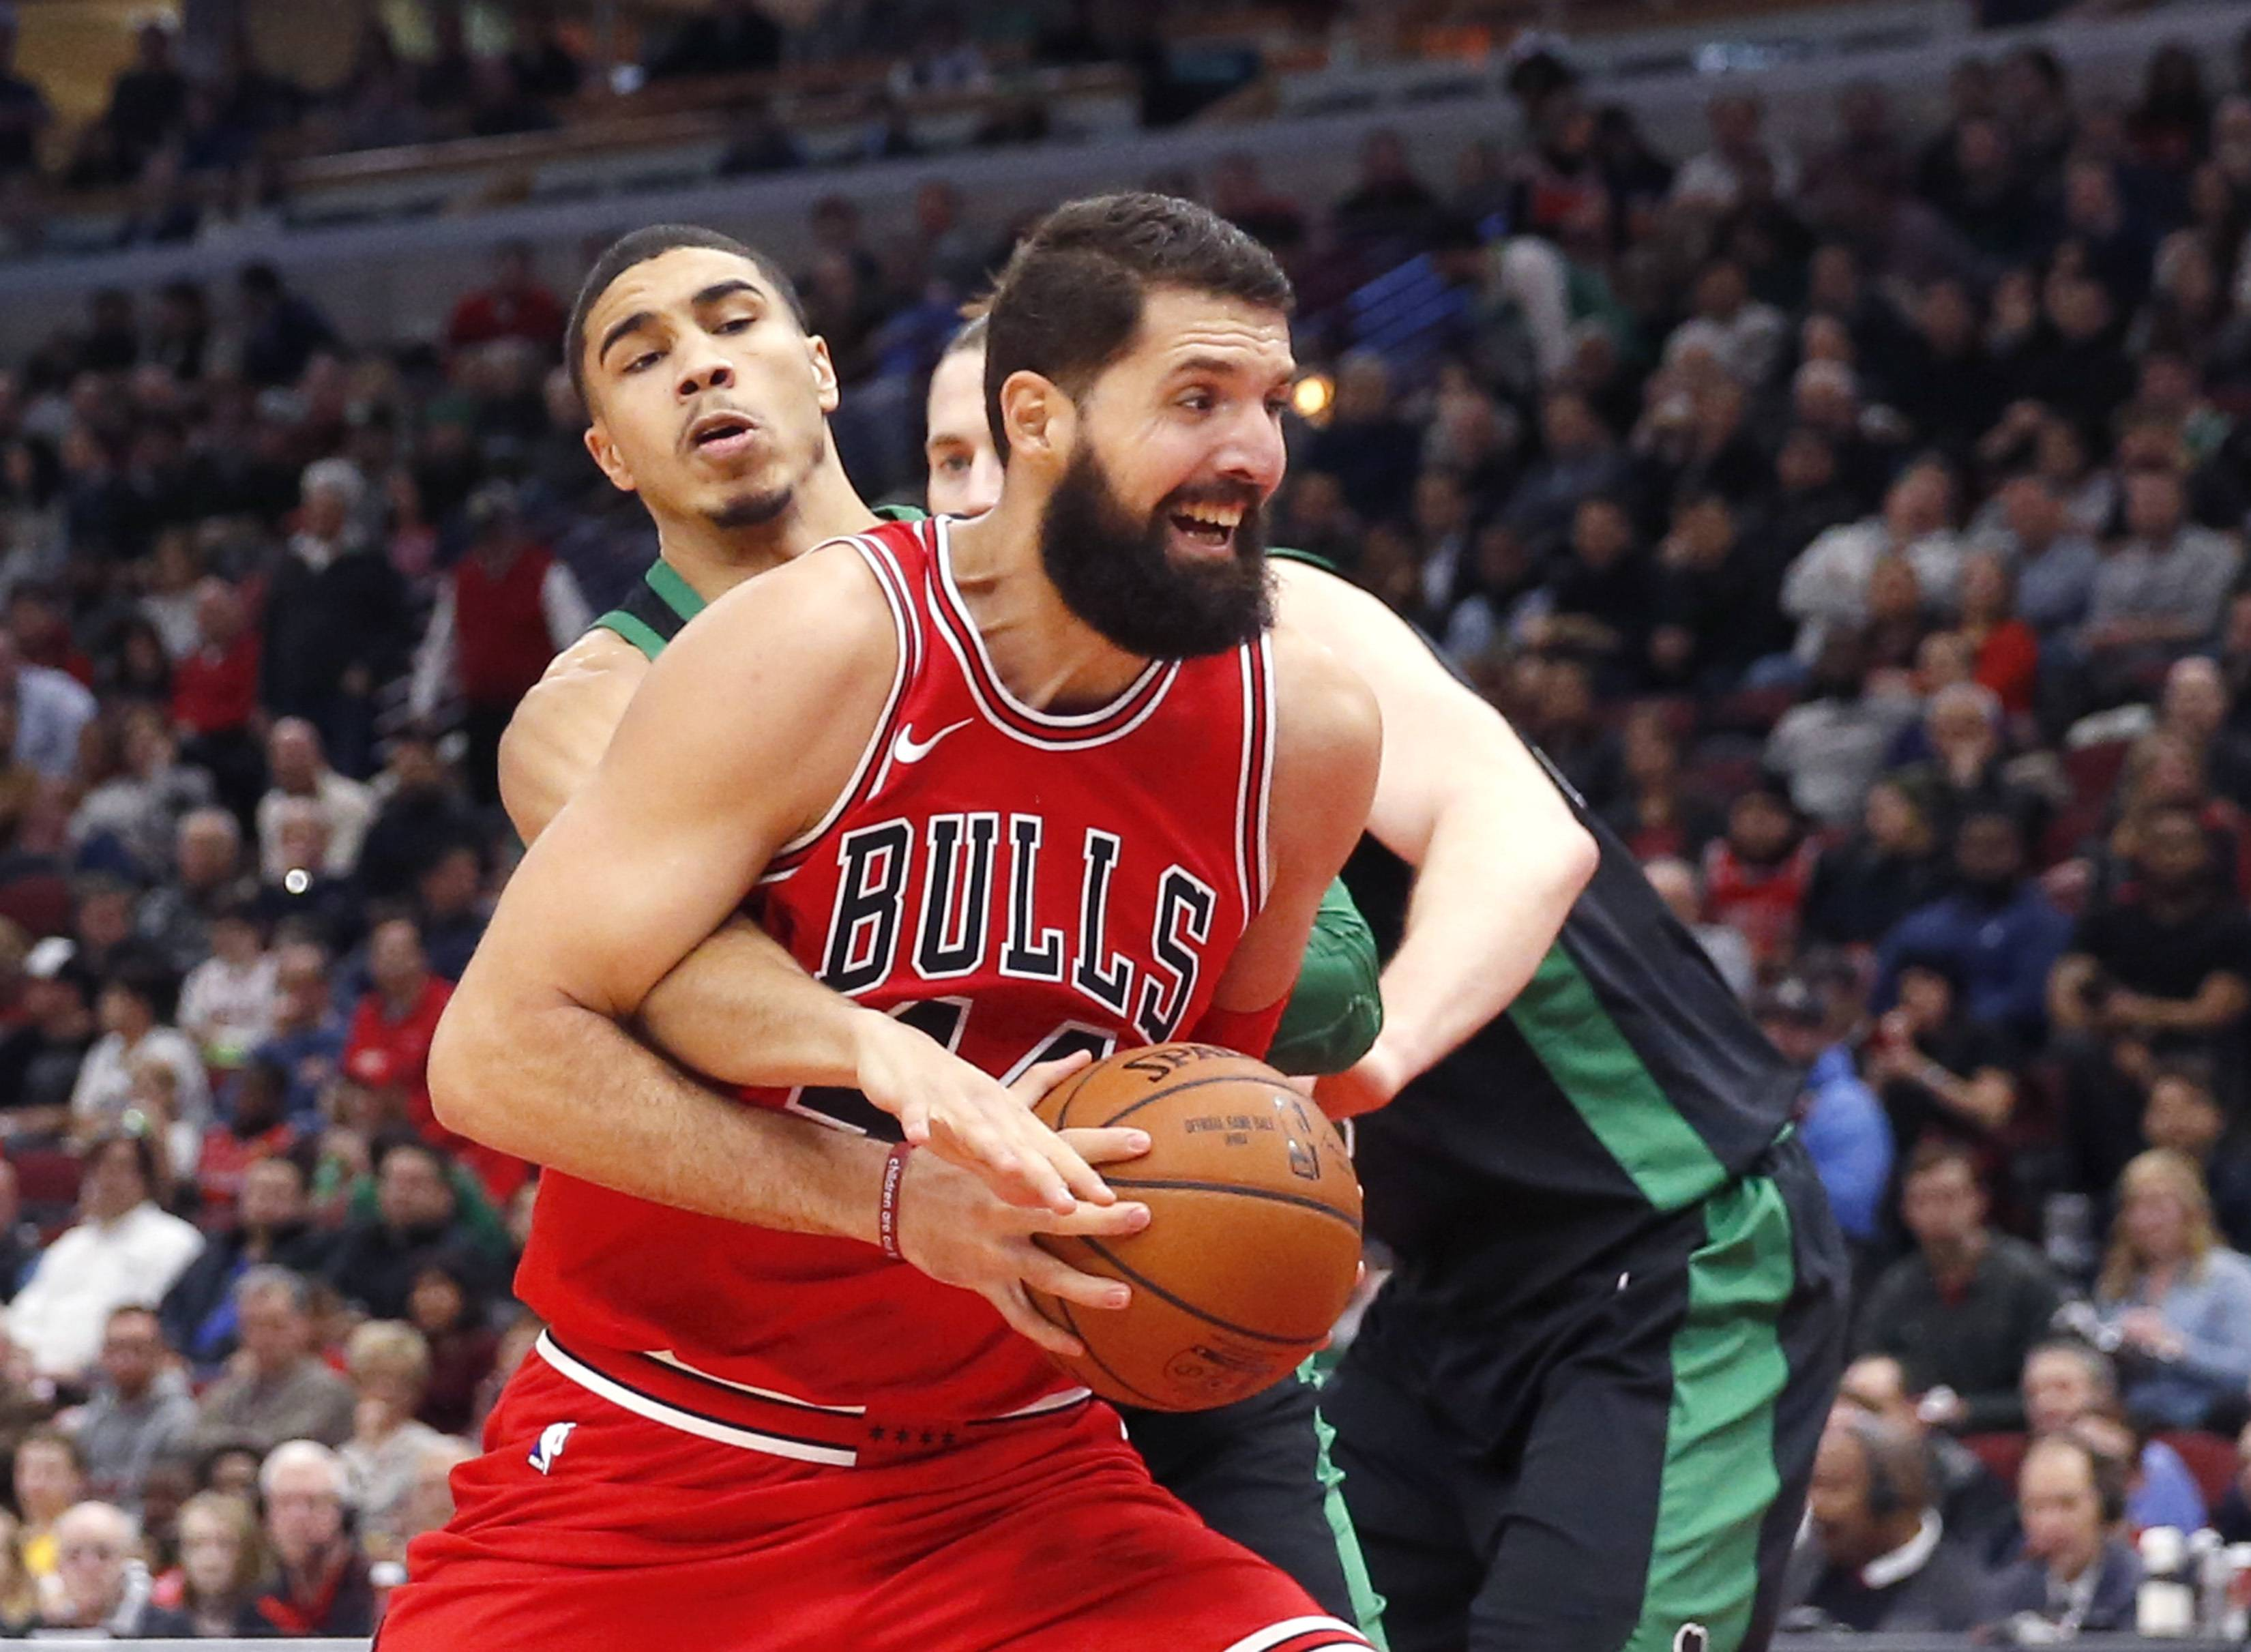 Mirotic, Portis combine to lead Chicago Bulls' blowout win over Boston